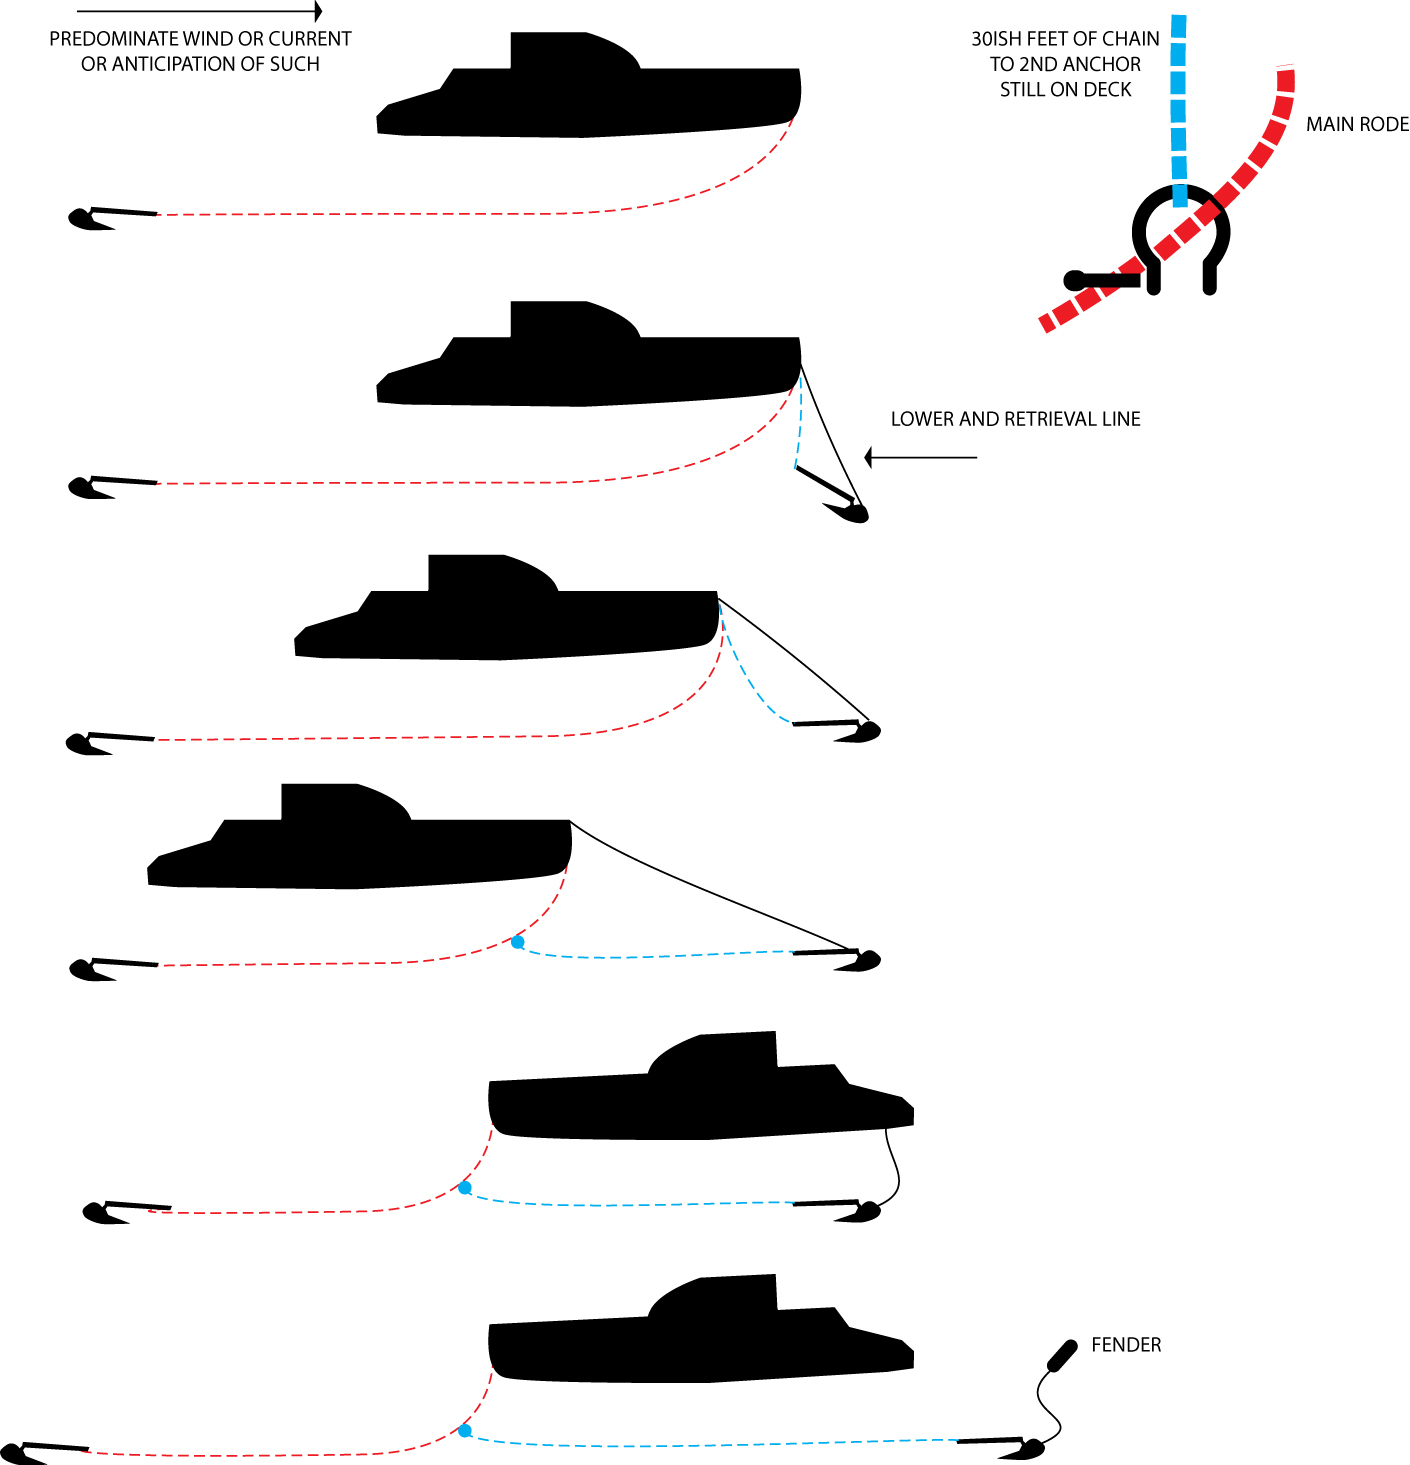 Click image for larger version  Name:MOORING.jpg Views:199 Size:359.0 KB ID:1439